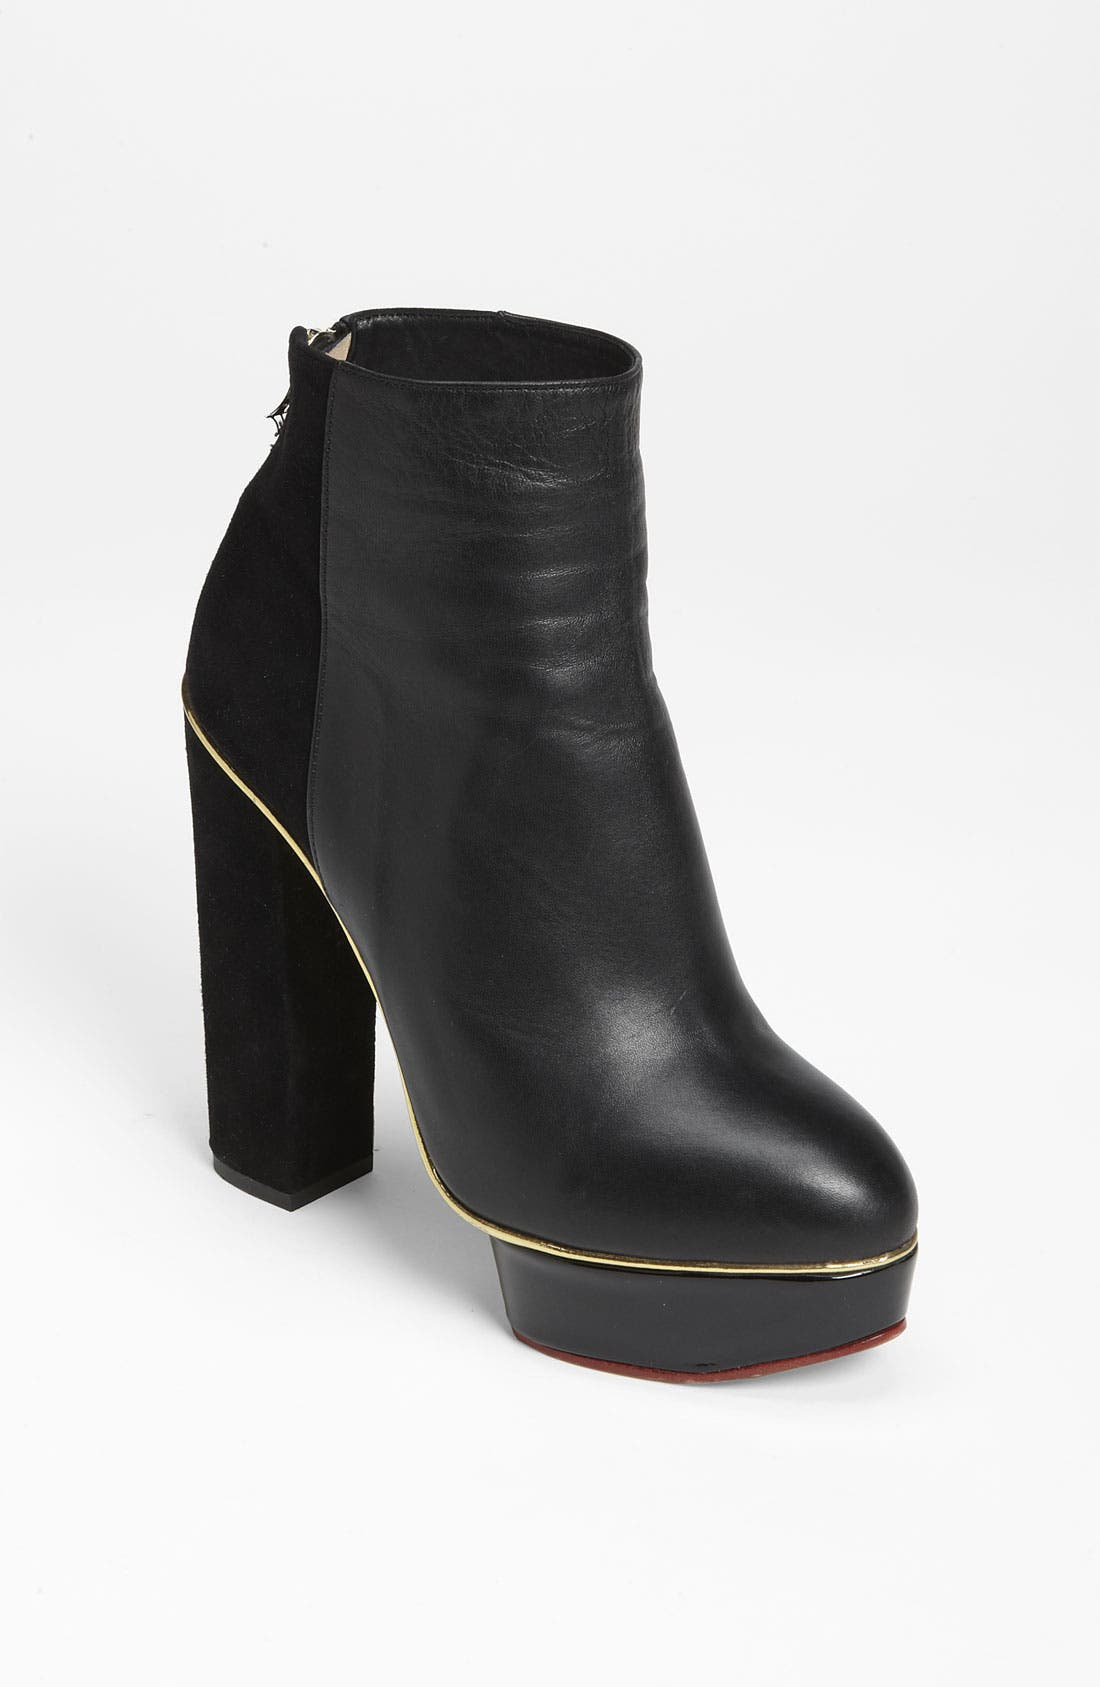 Main Image - Charlotte Olympia Ankle Bootie